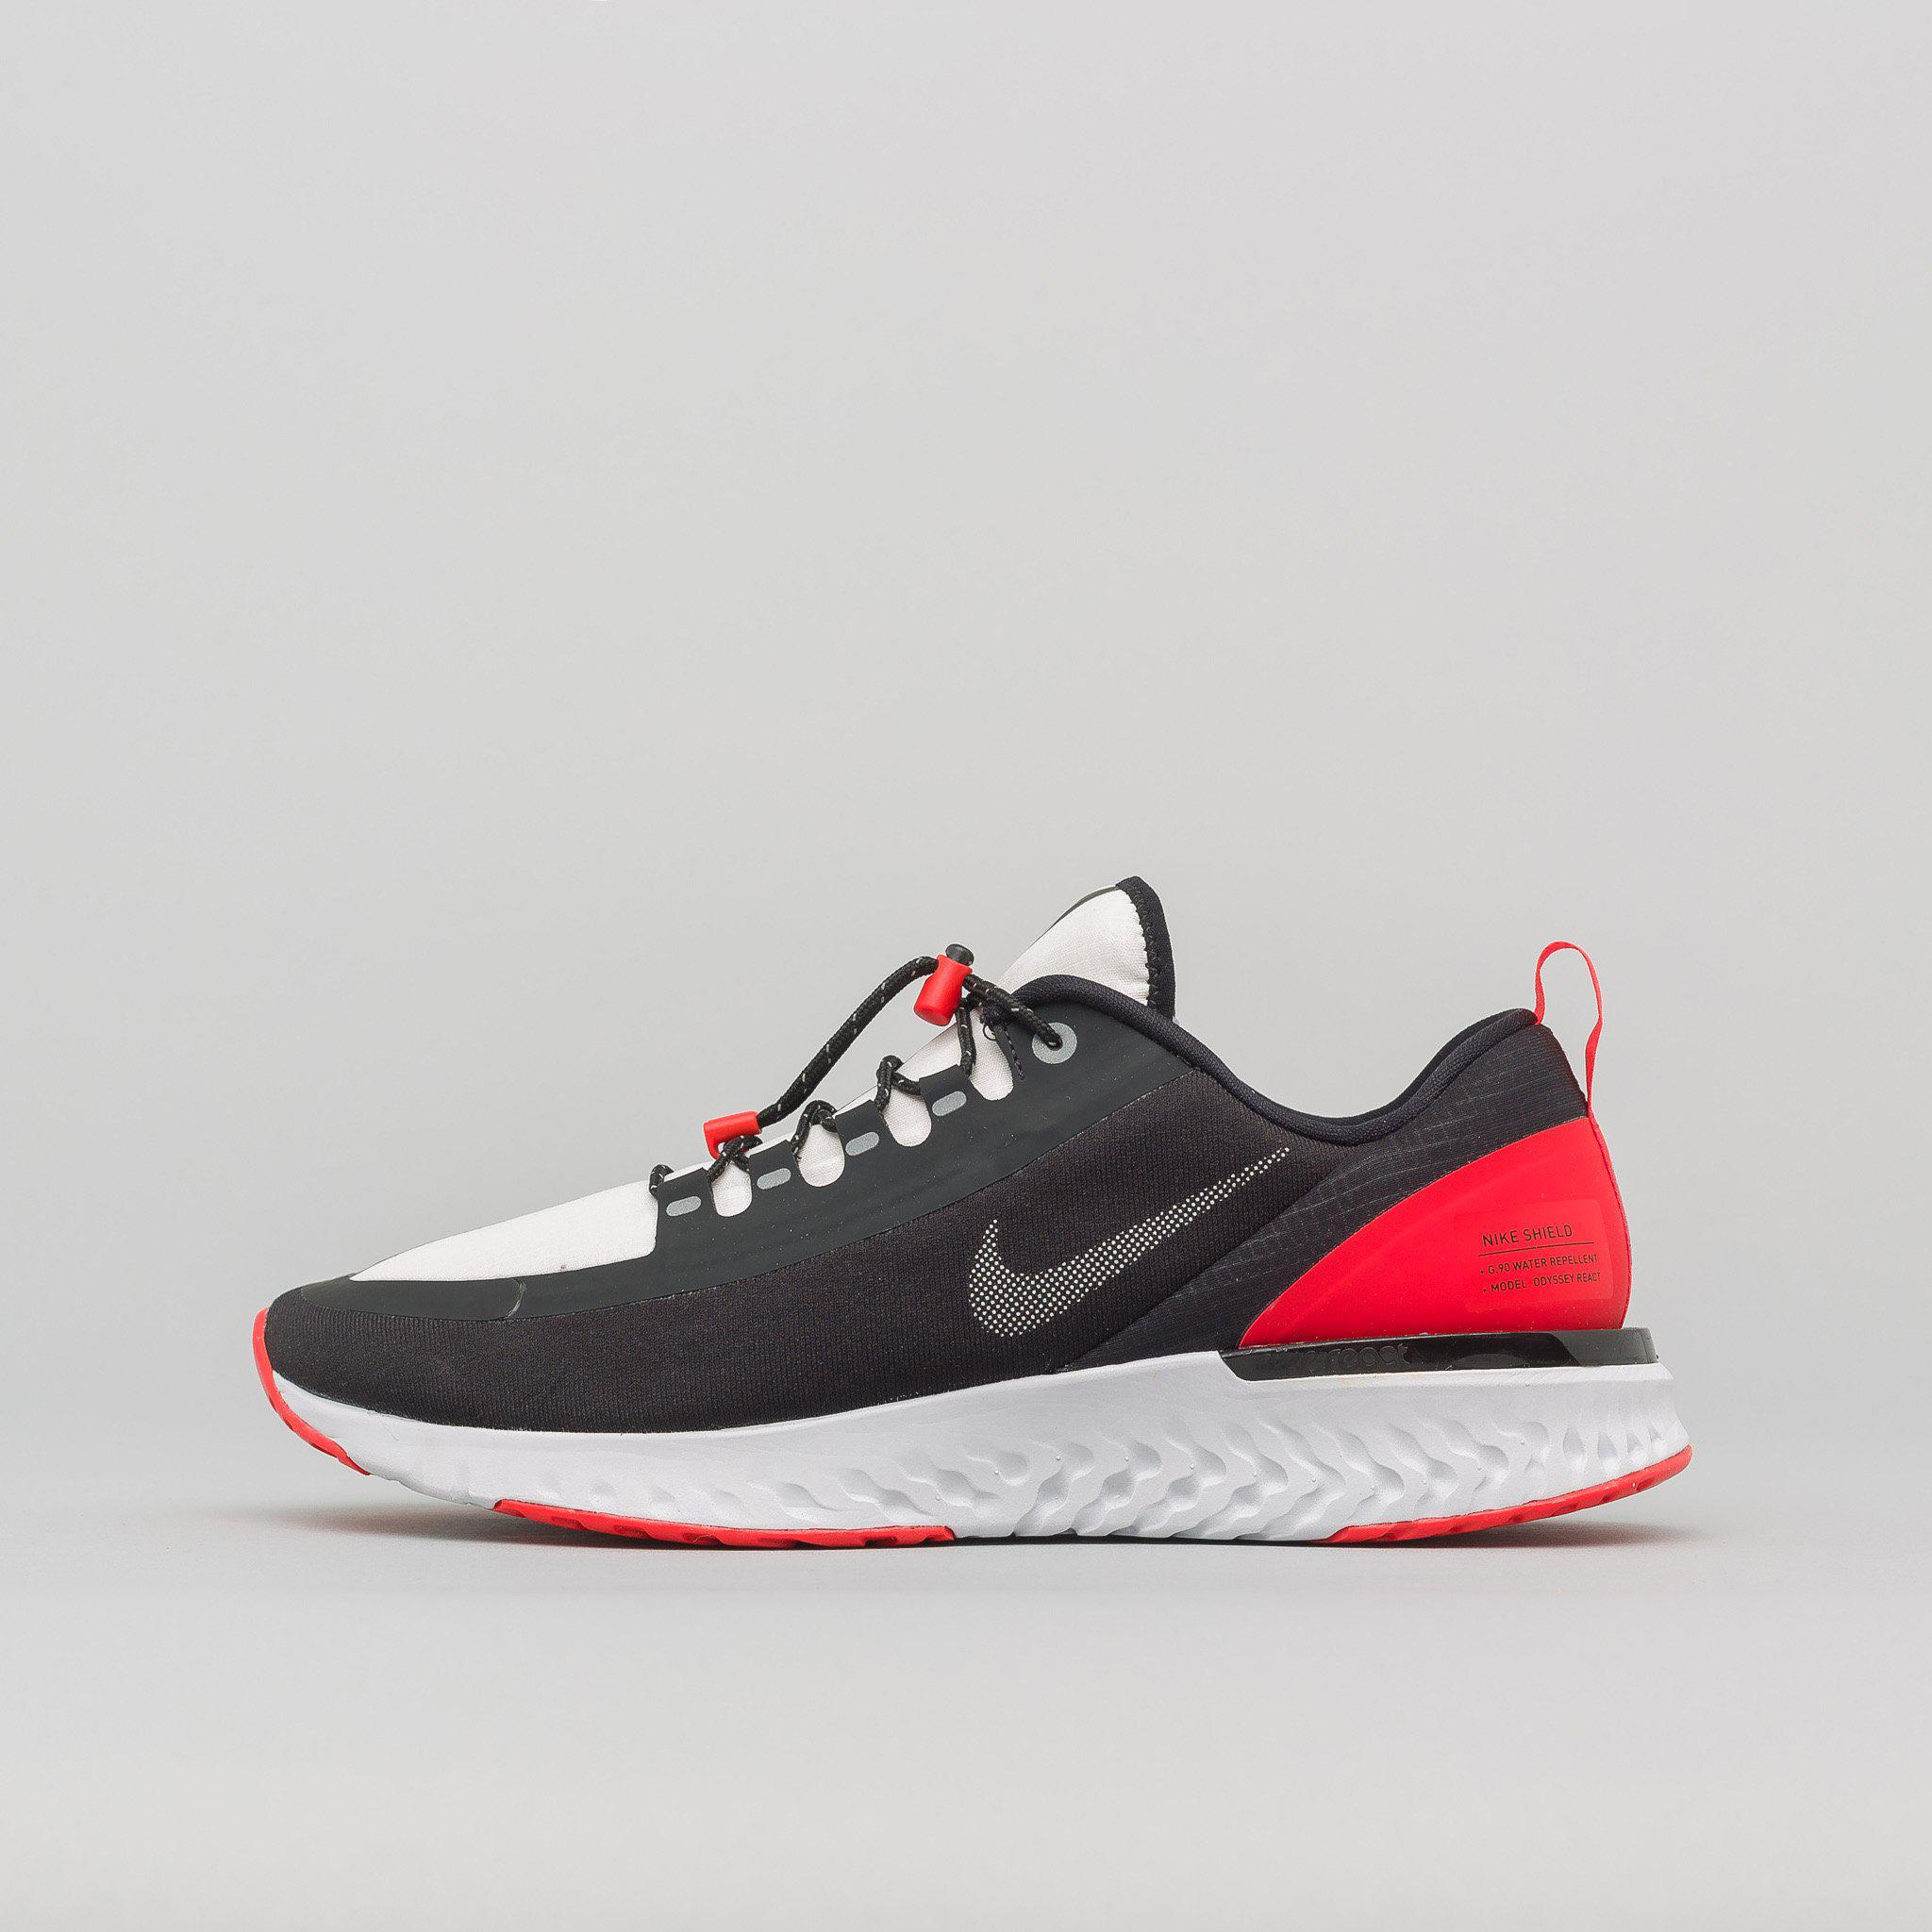 online store 5b6d5 d2279 ... switzerland nike. mens odyssey react shield nrg in black silver red  7b4c8 dca13